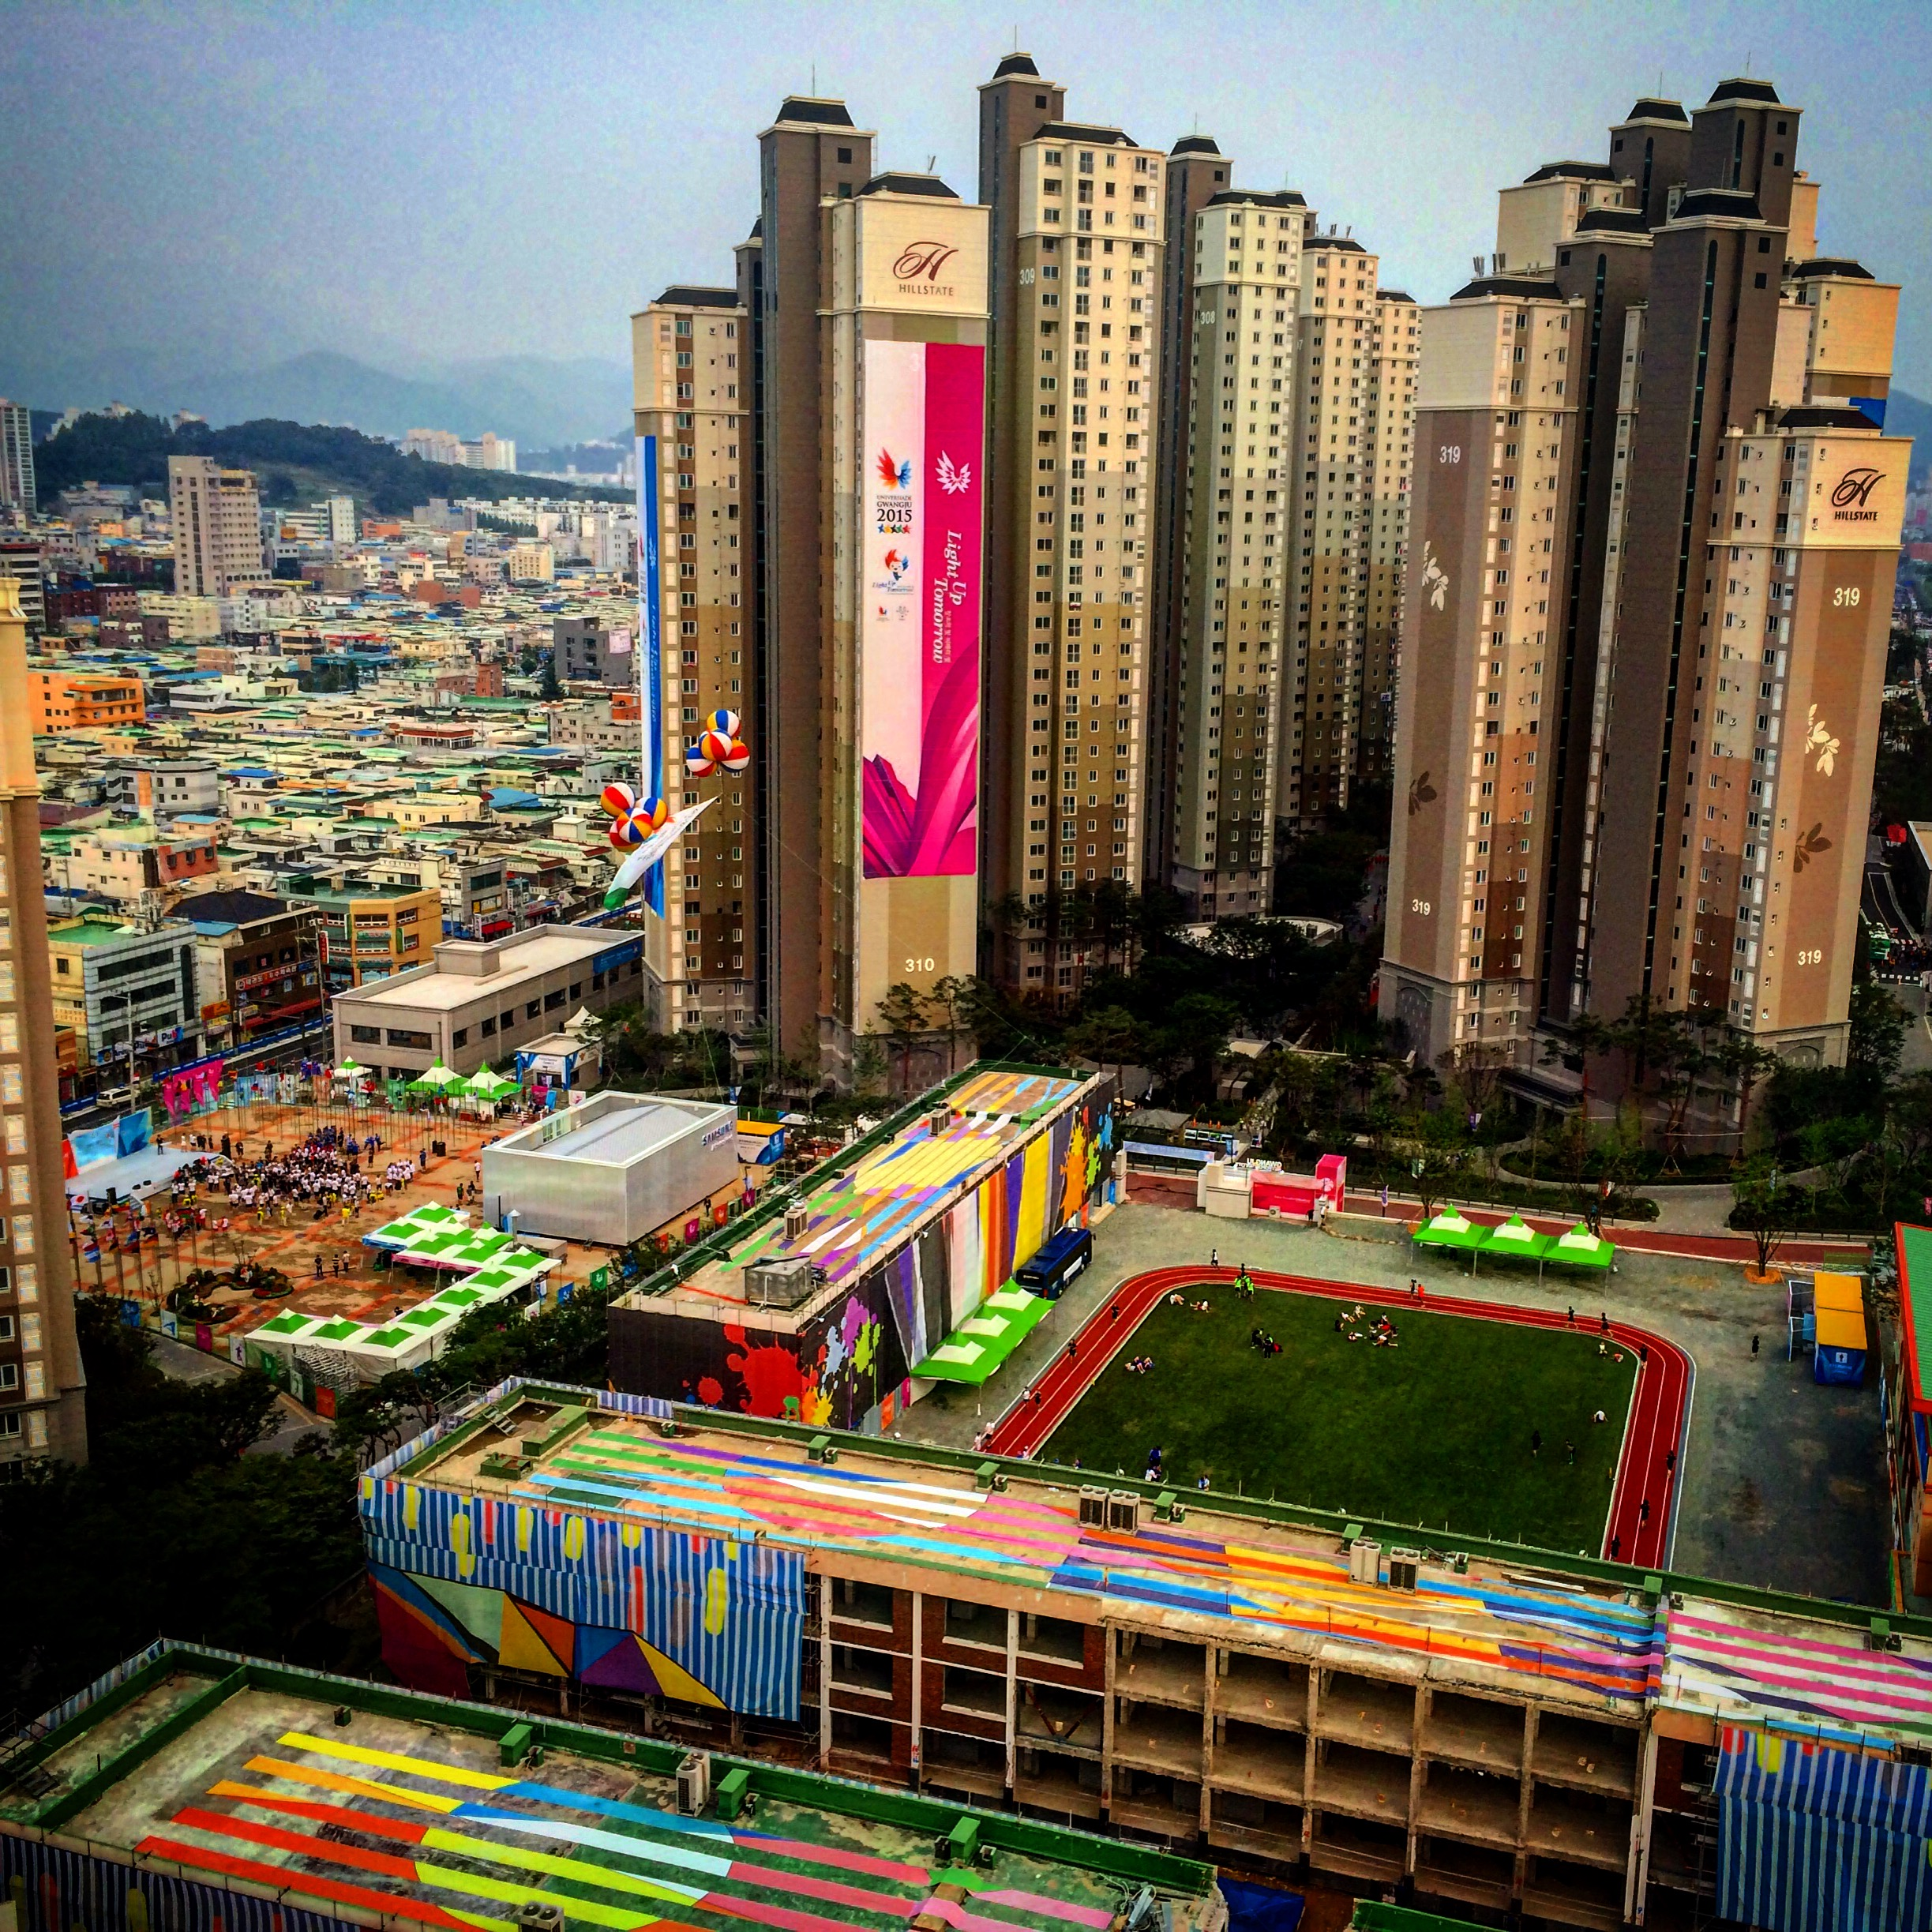 Shot of the main athletes village from NZ's floor (20th of 20) of accomodation block 318